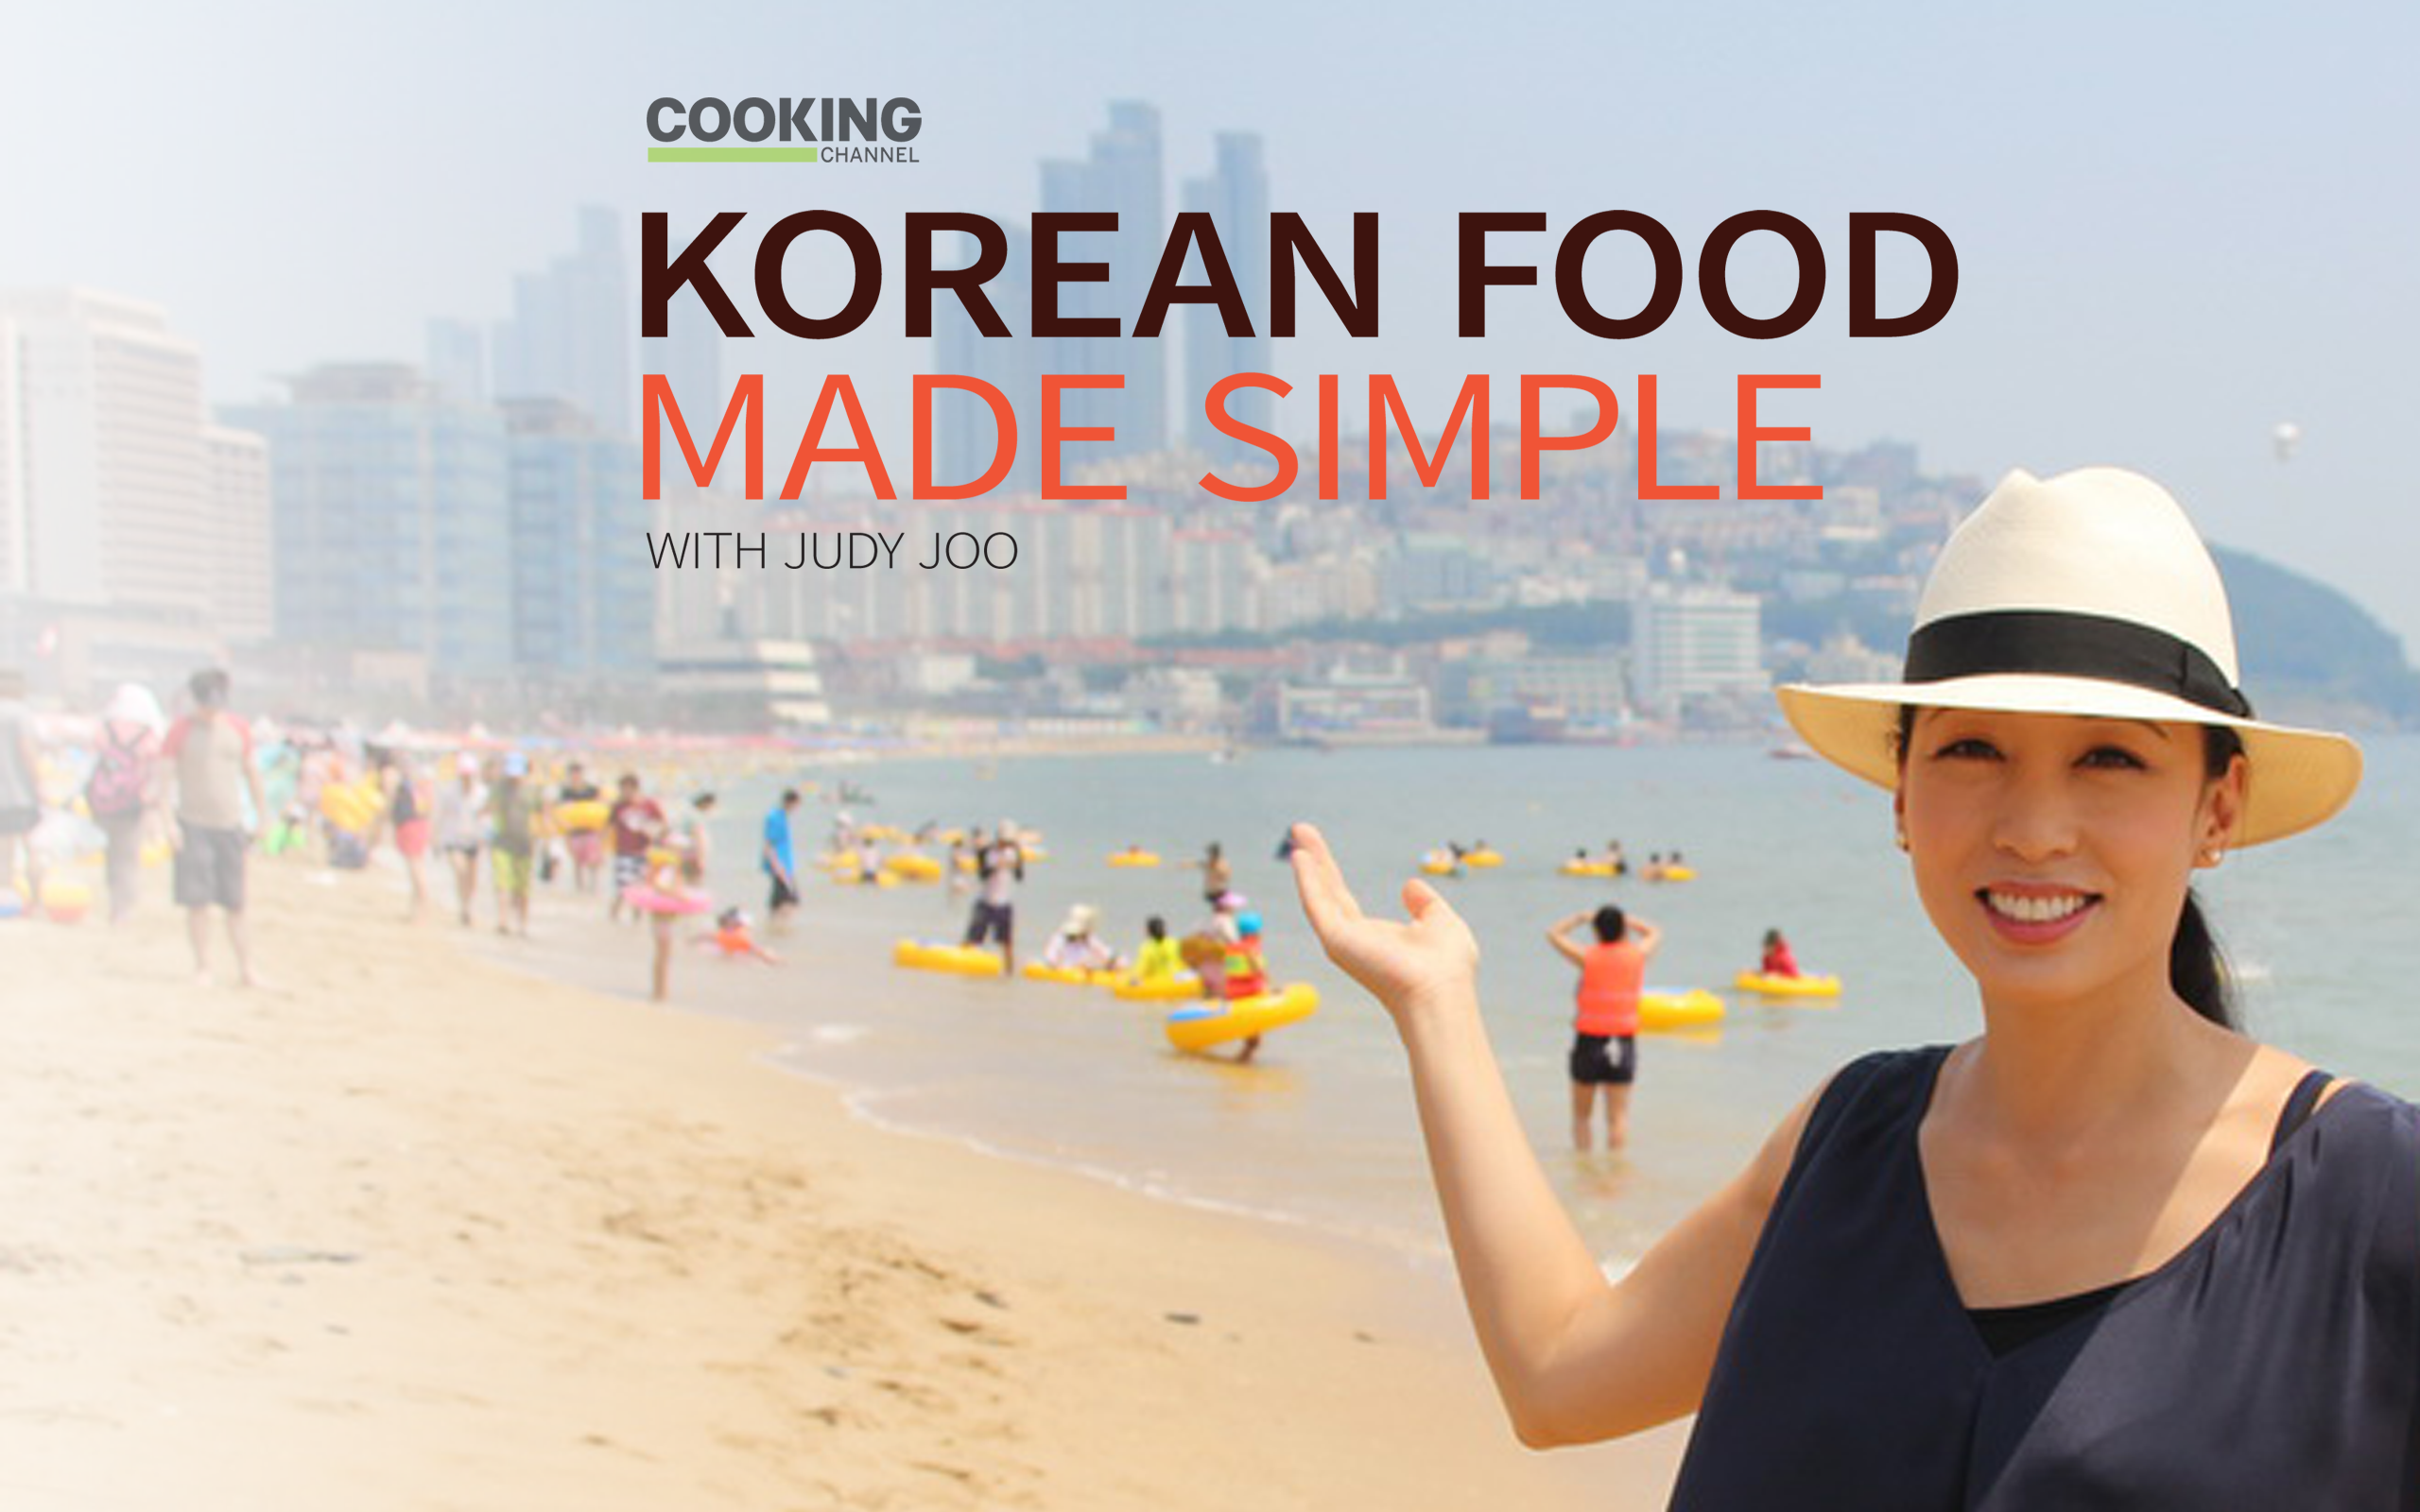 Korean food made simple on the cooking channel judy joo korean food made simple on the cooking channel judy joo i want to try making her korean mexican fusion pork tacos forumfinder Gallery